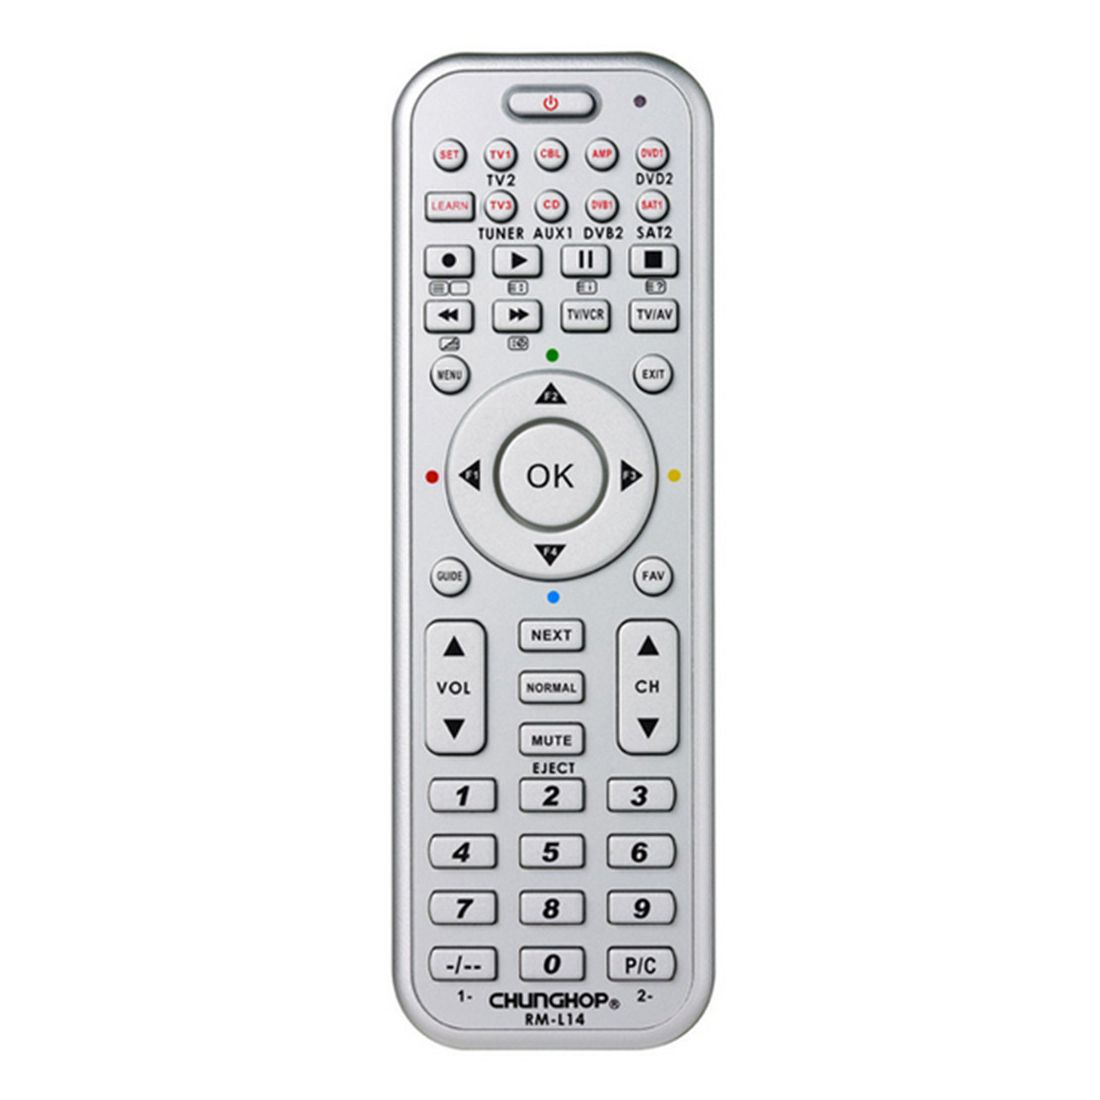 CHUNGHOP RM-L14 Universal Smart Remote Control With Learn Function For TV CBL DVD SAT DVB CONTROLLER copy